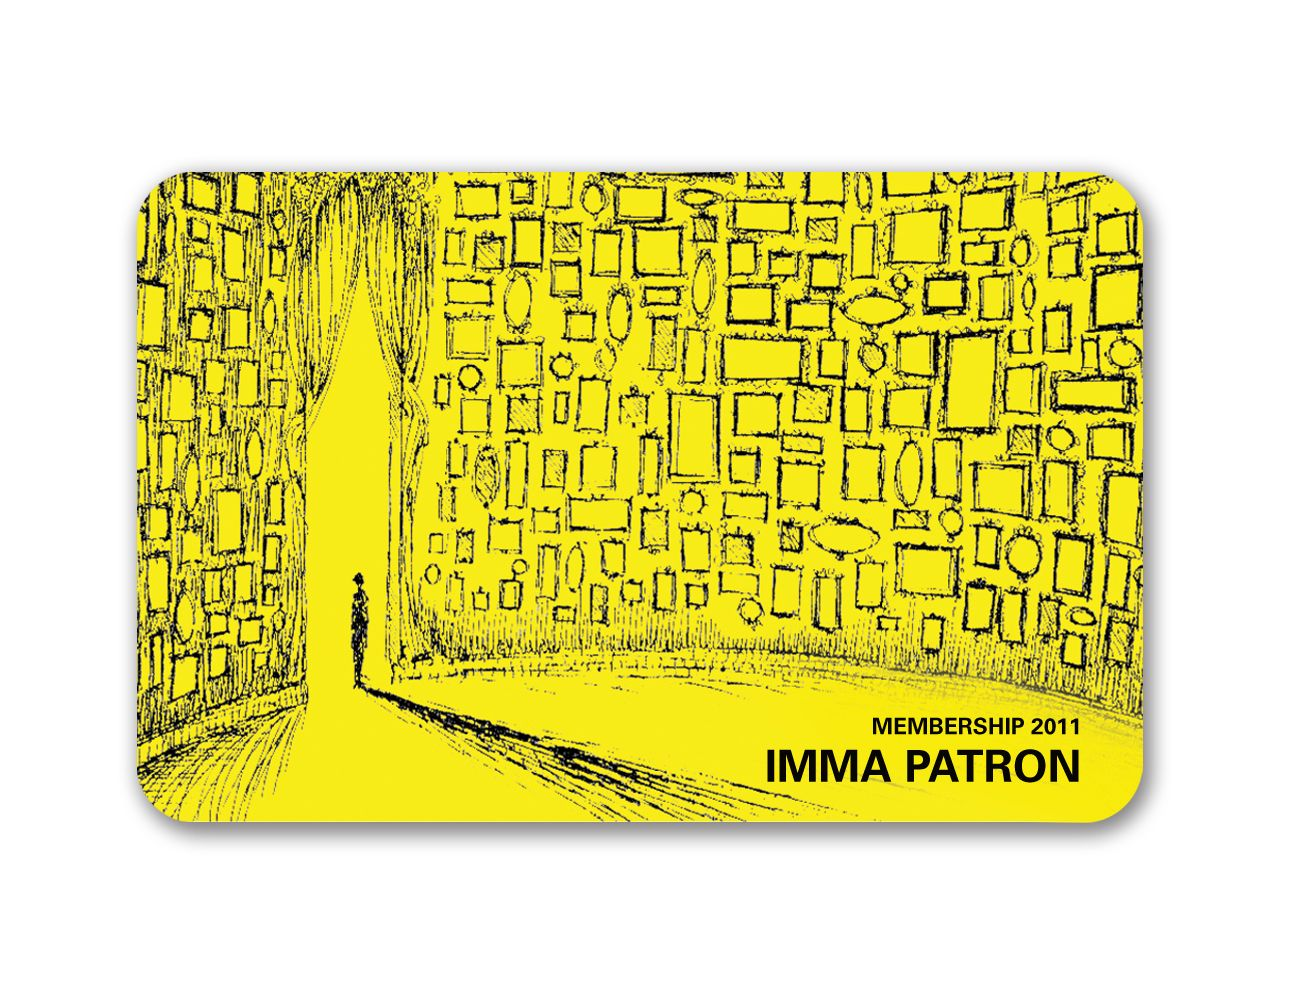 Art Museum Membership Cards | IMMAu0027s 2011 LIMITED EDITION MEMBERSHIP CARD  Printable Membership Cards